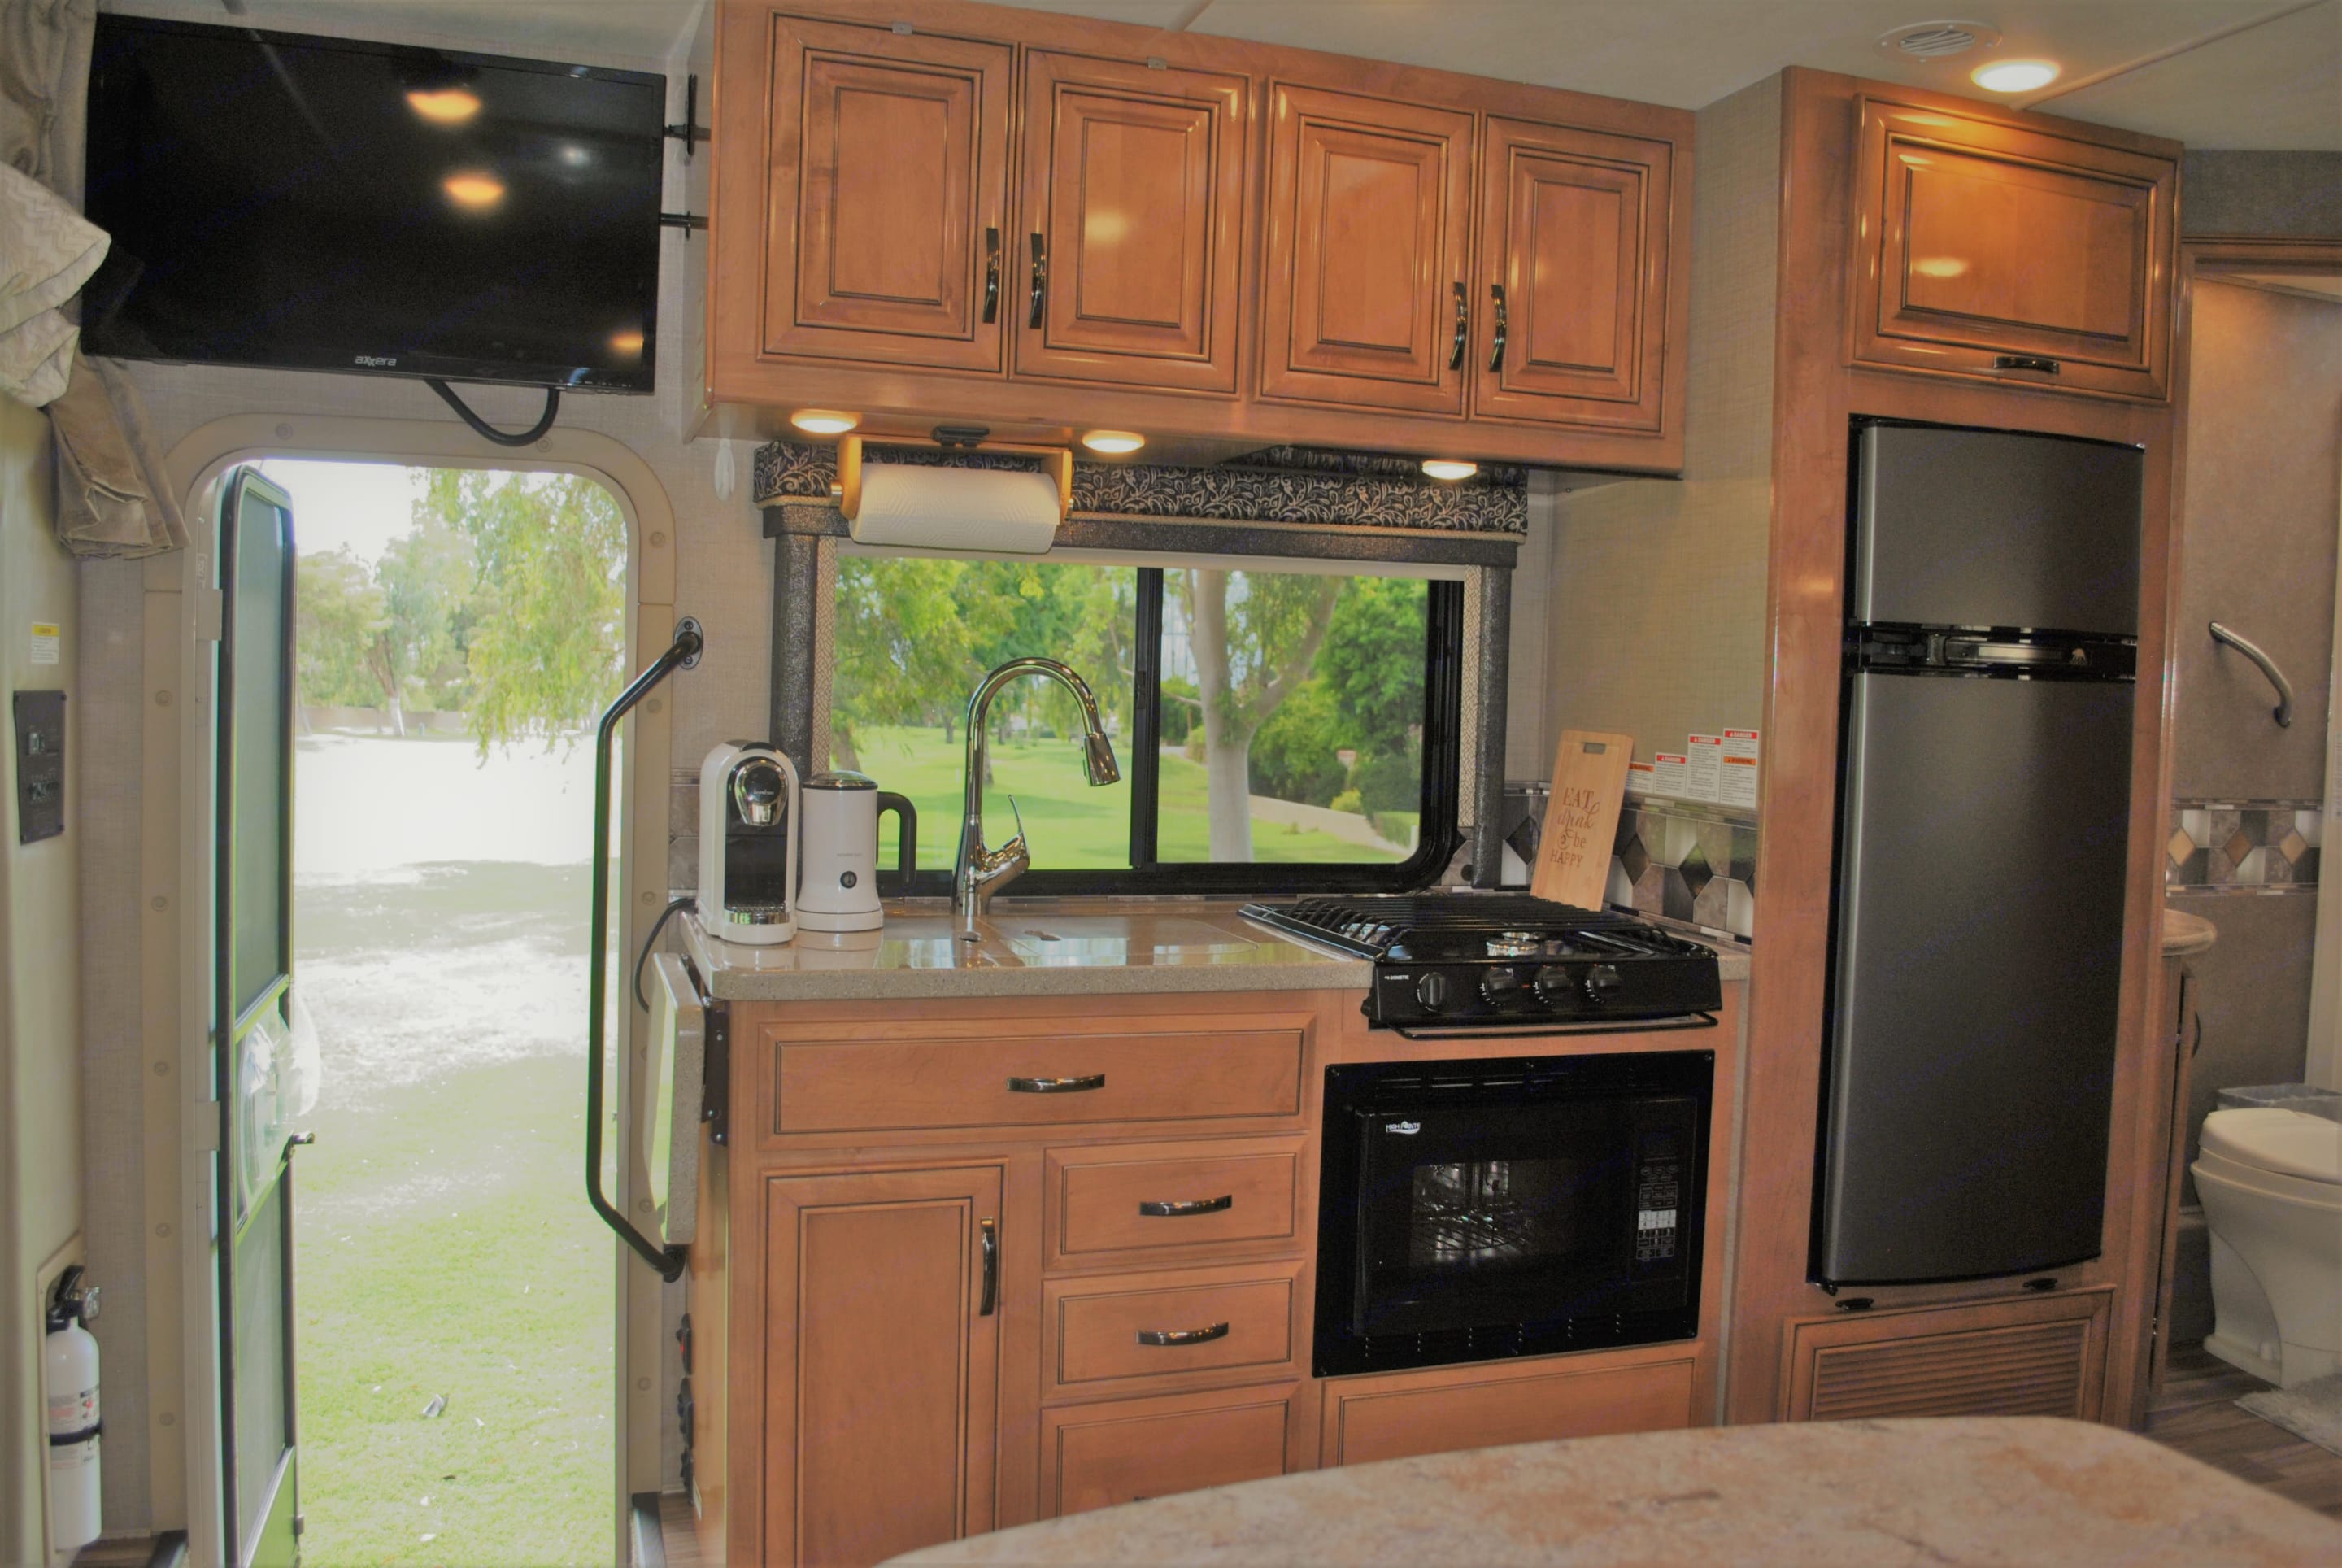 beautiful kitchen comes with just about everything you will need for your next trip. propane cook top , microwave , refrigerator ,cappuccino make and frother , toaster ,pots ,pans ,dishware ,silverware ,coffee cups , cooking utensils and much more.. Mercedes-Benz Sprinter 2018